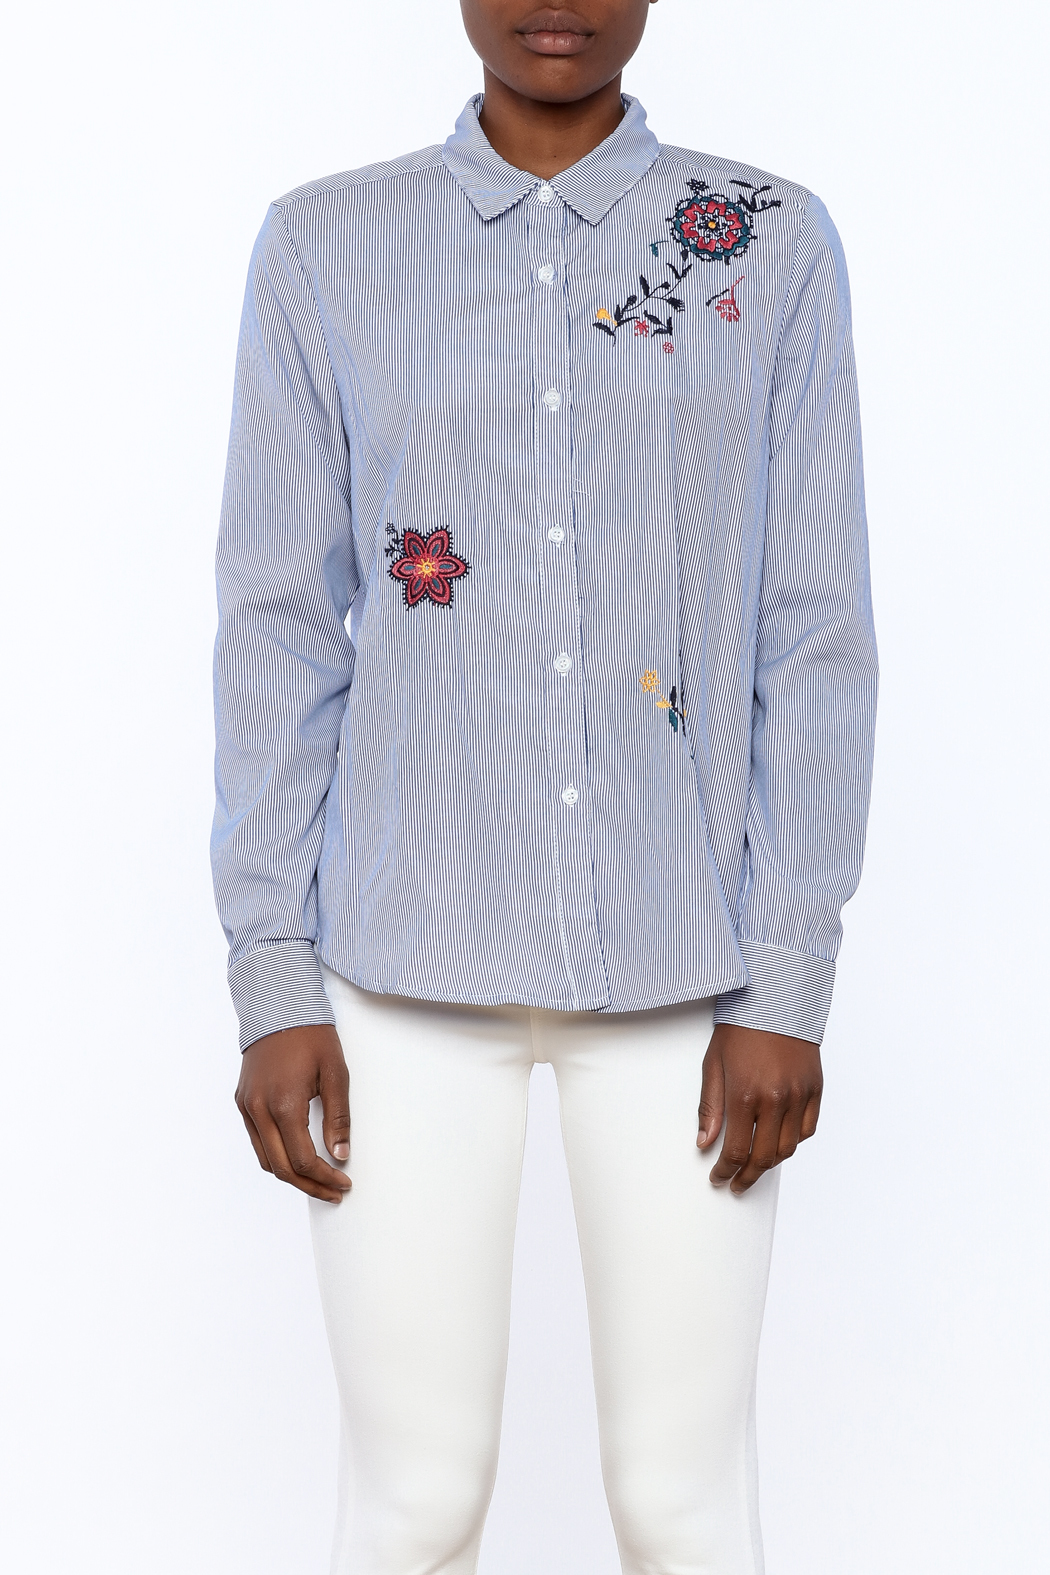 Current Air Embroidered Button Down - Side Cropped Image